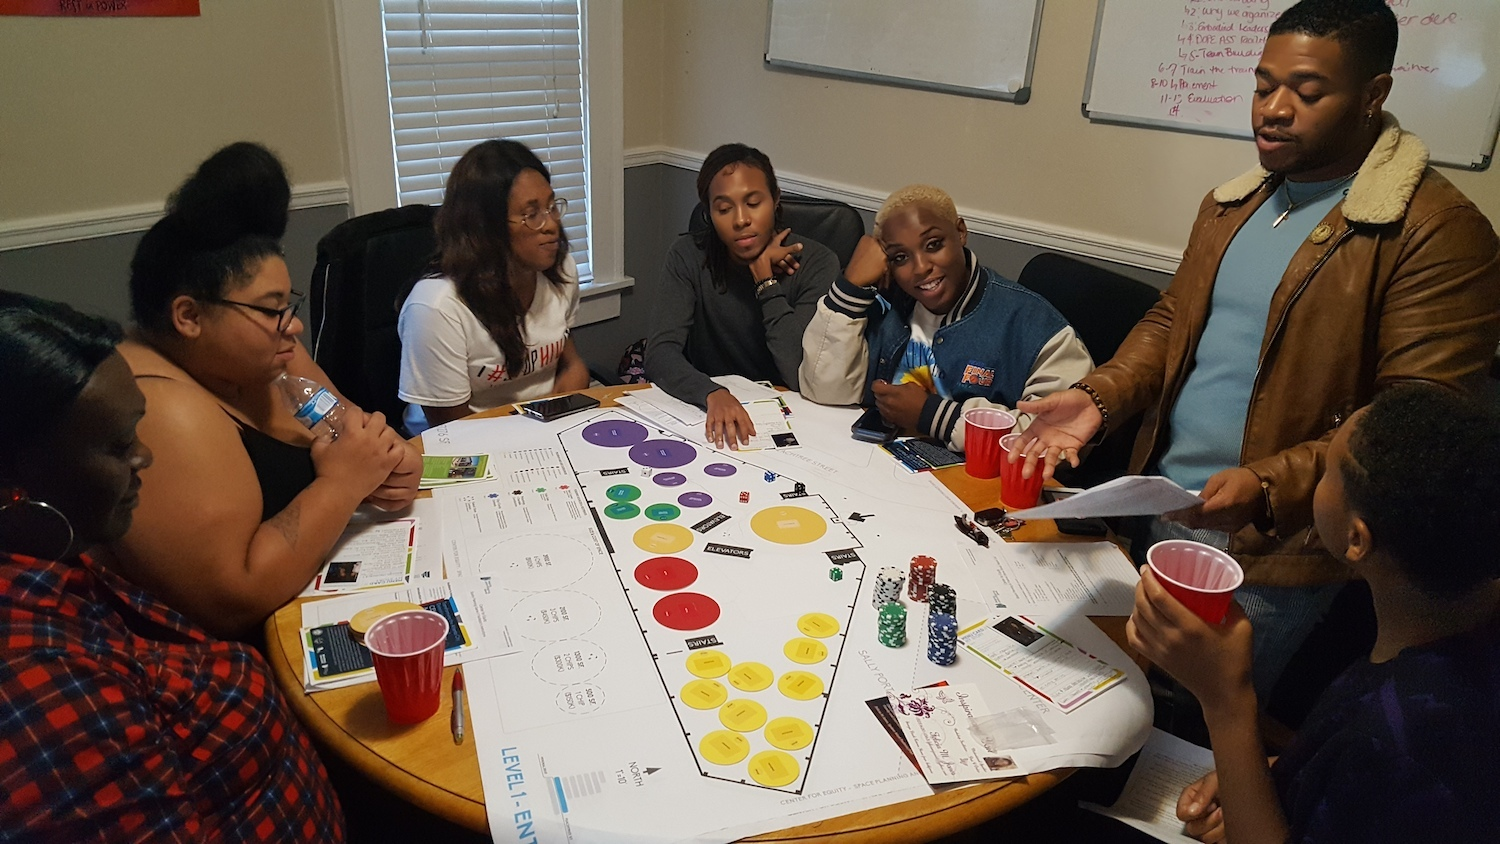 Atlanta resident participating in Center for Equity design activities